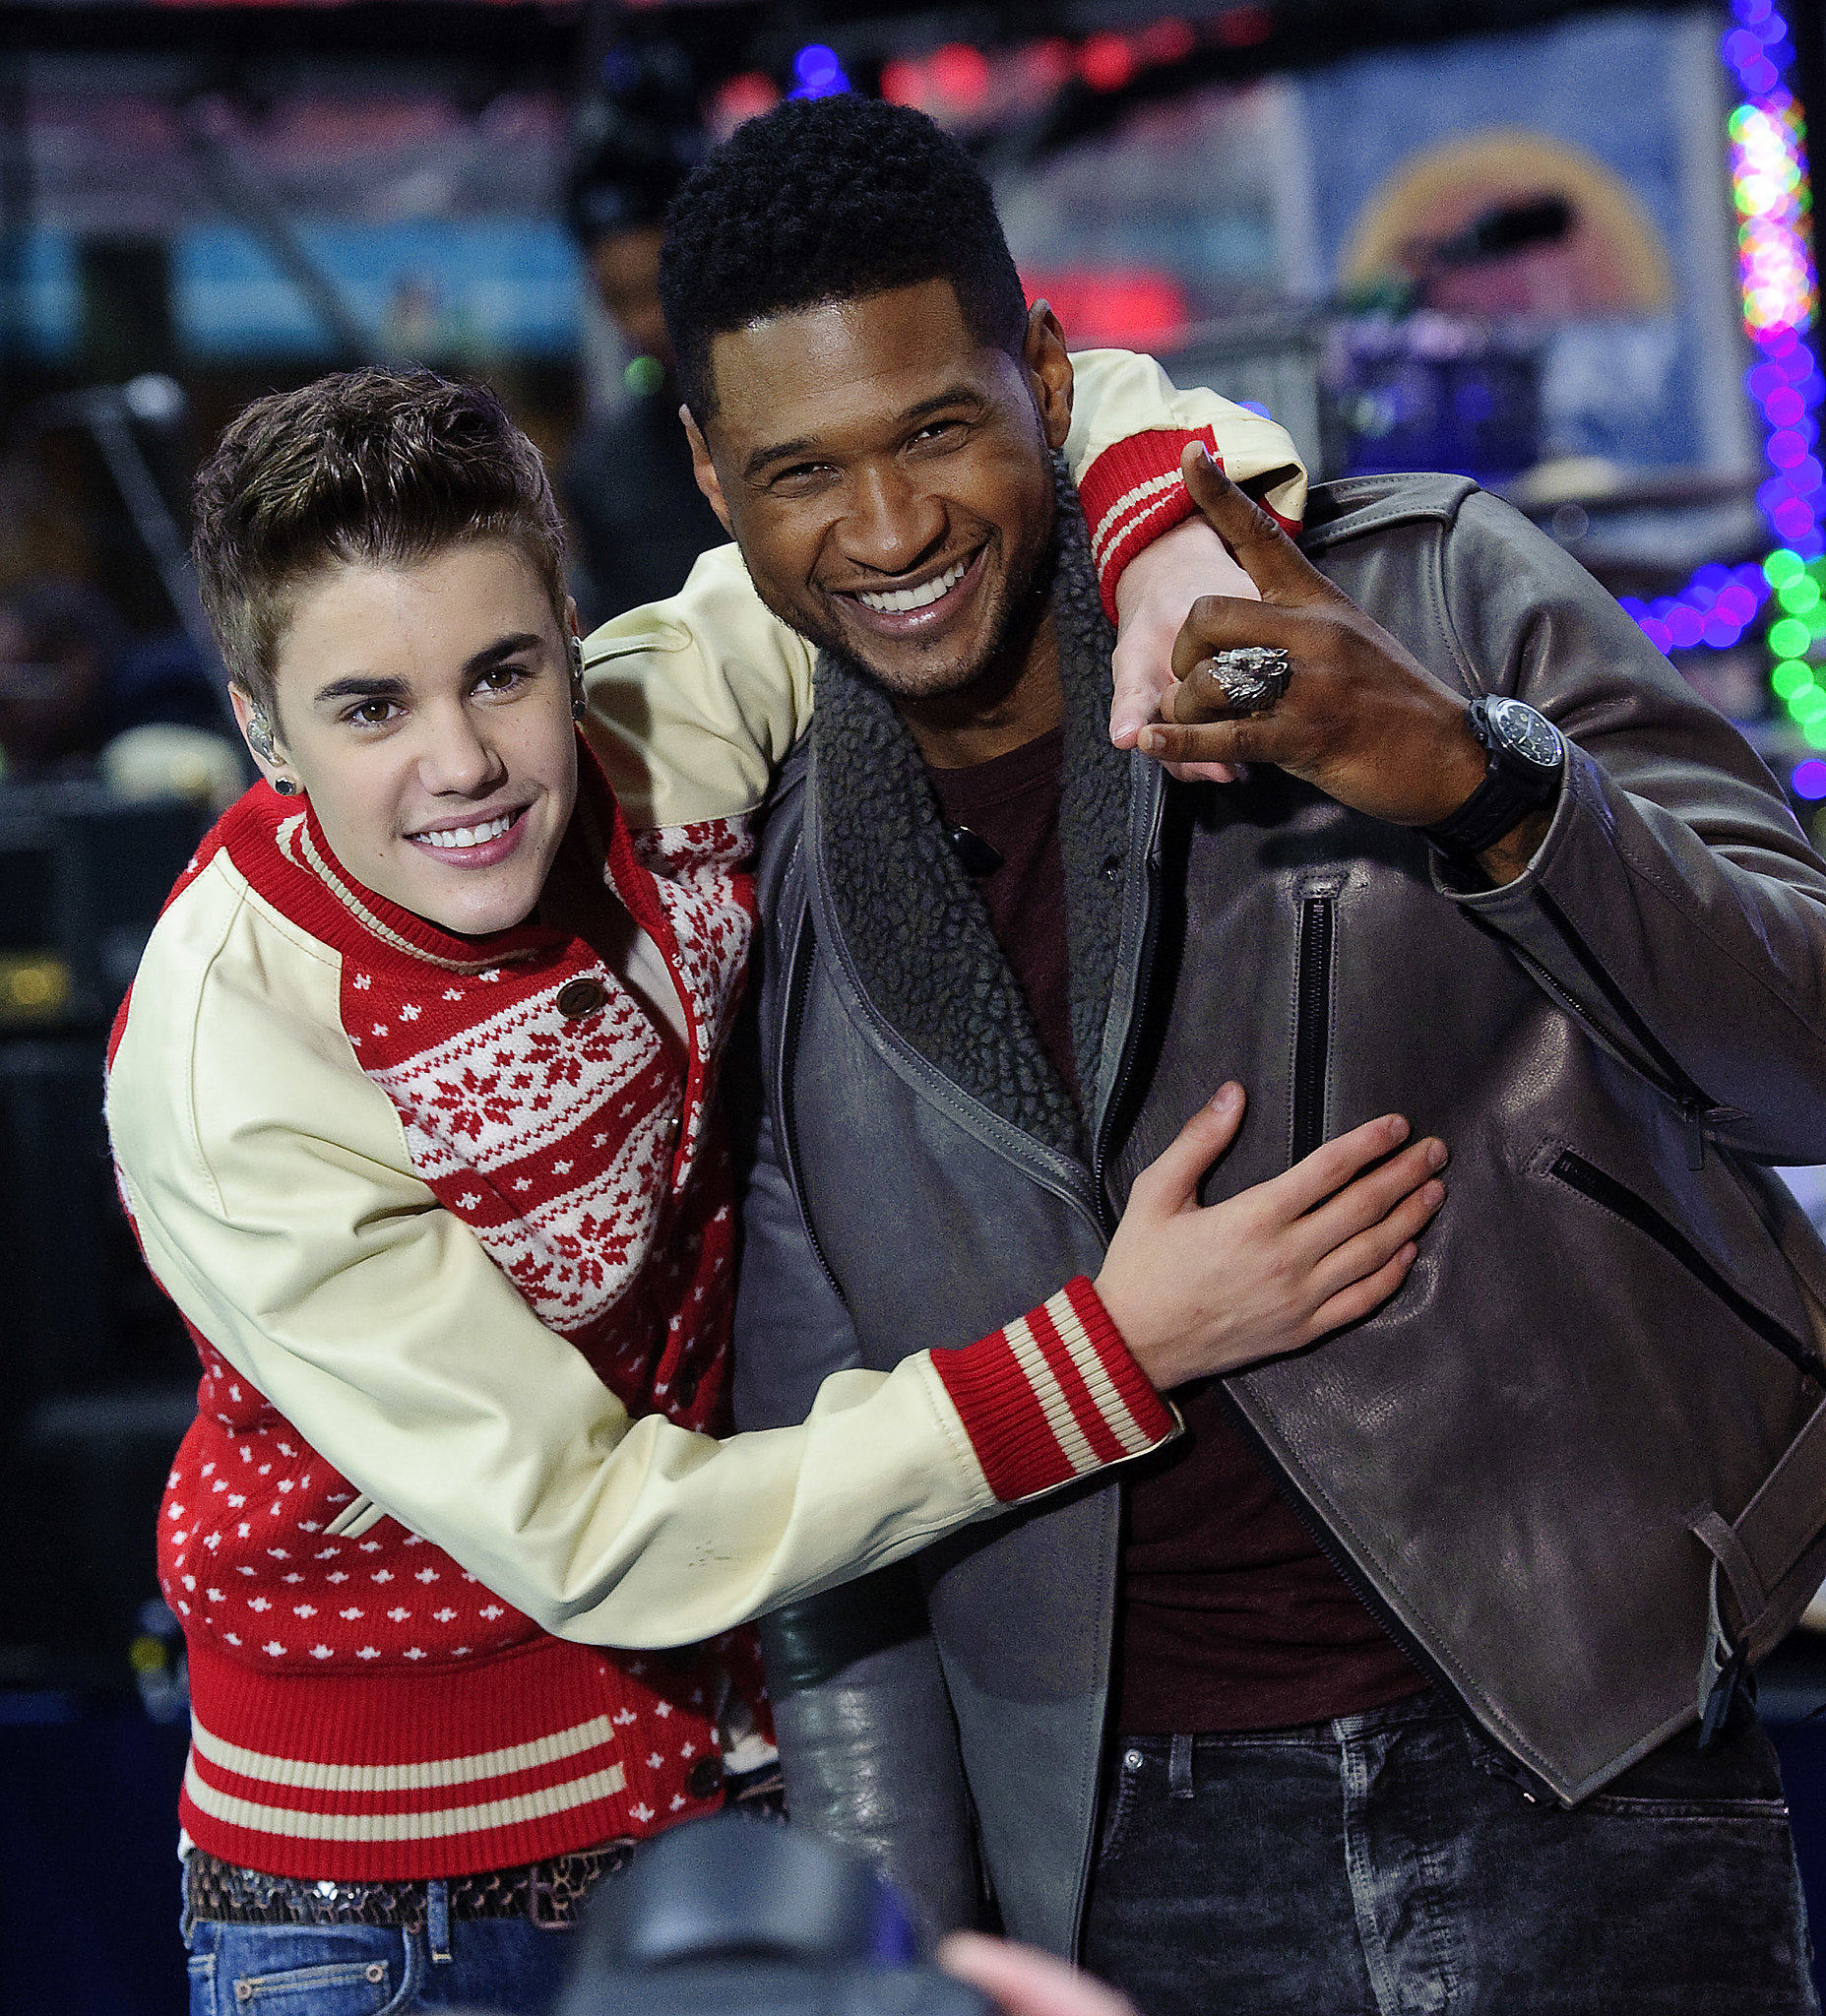 Justin Bieber used to idolize Usher, and now the s